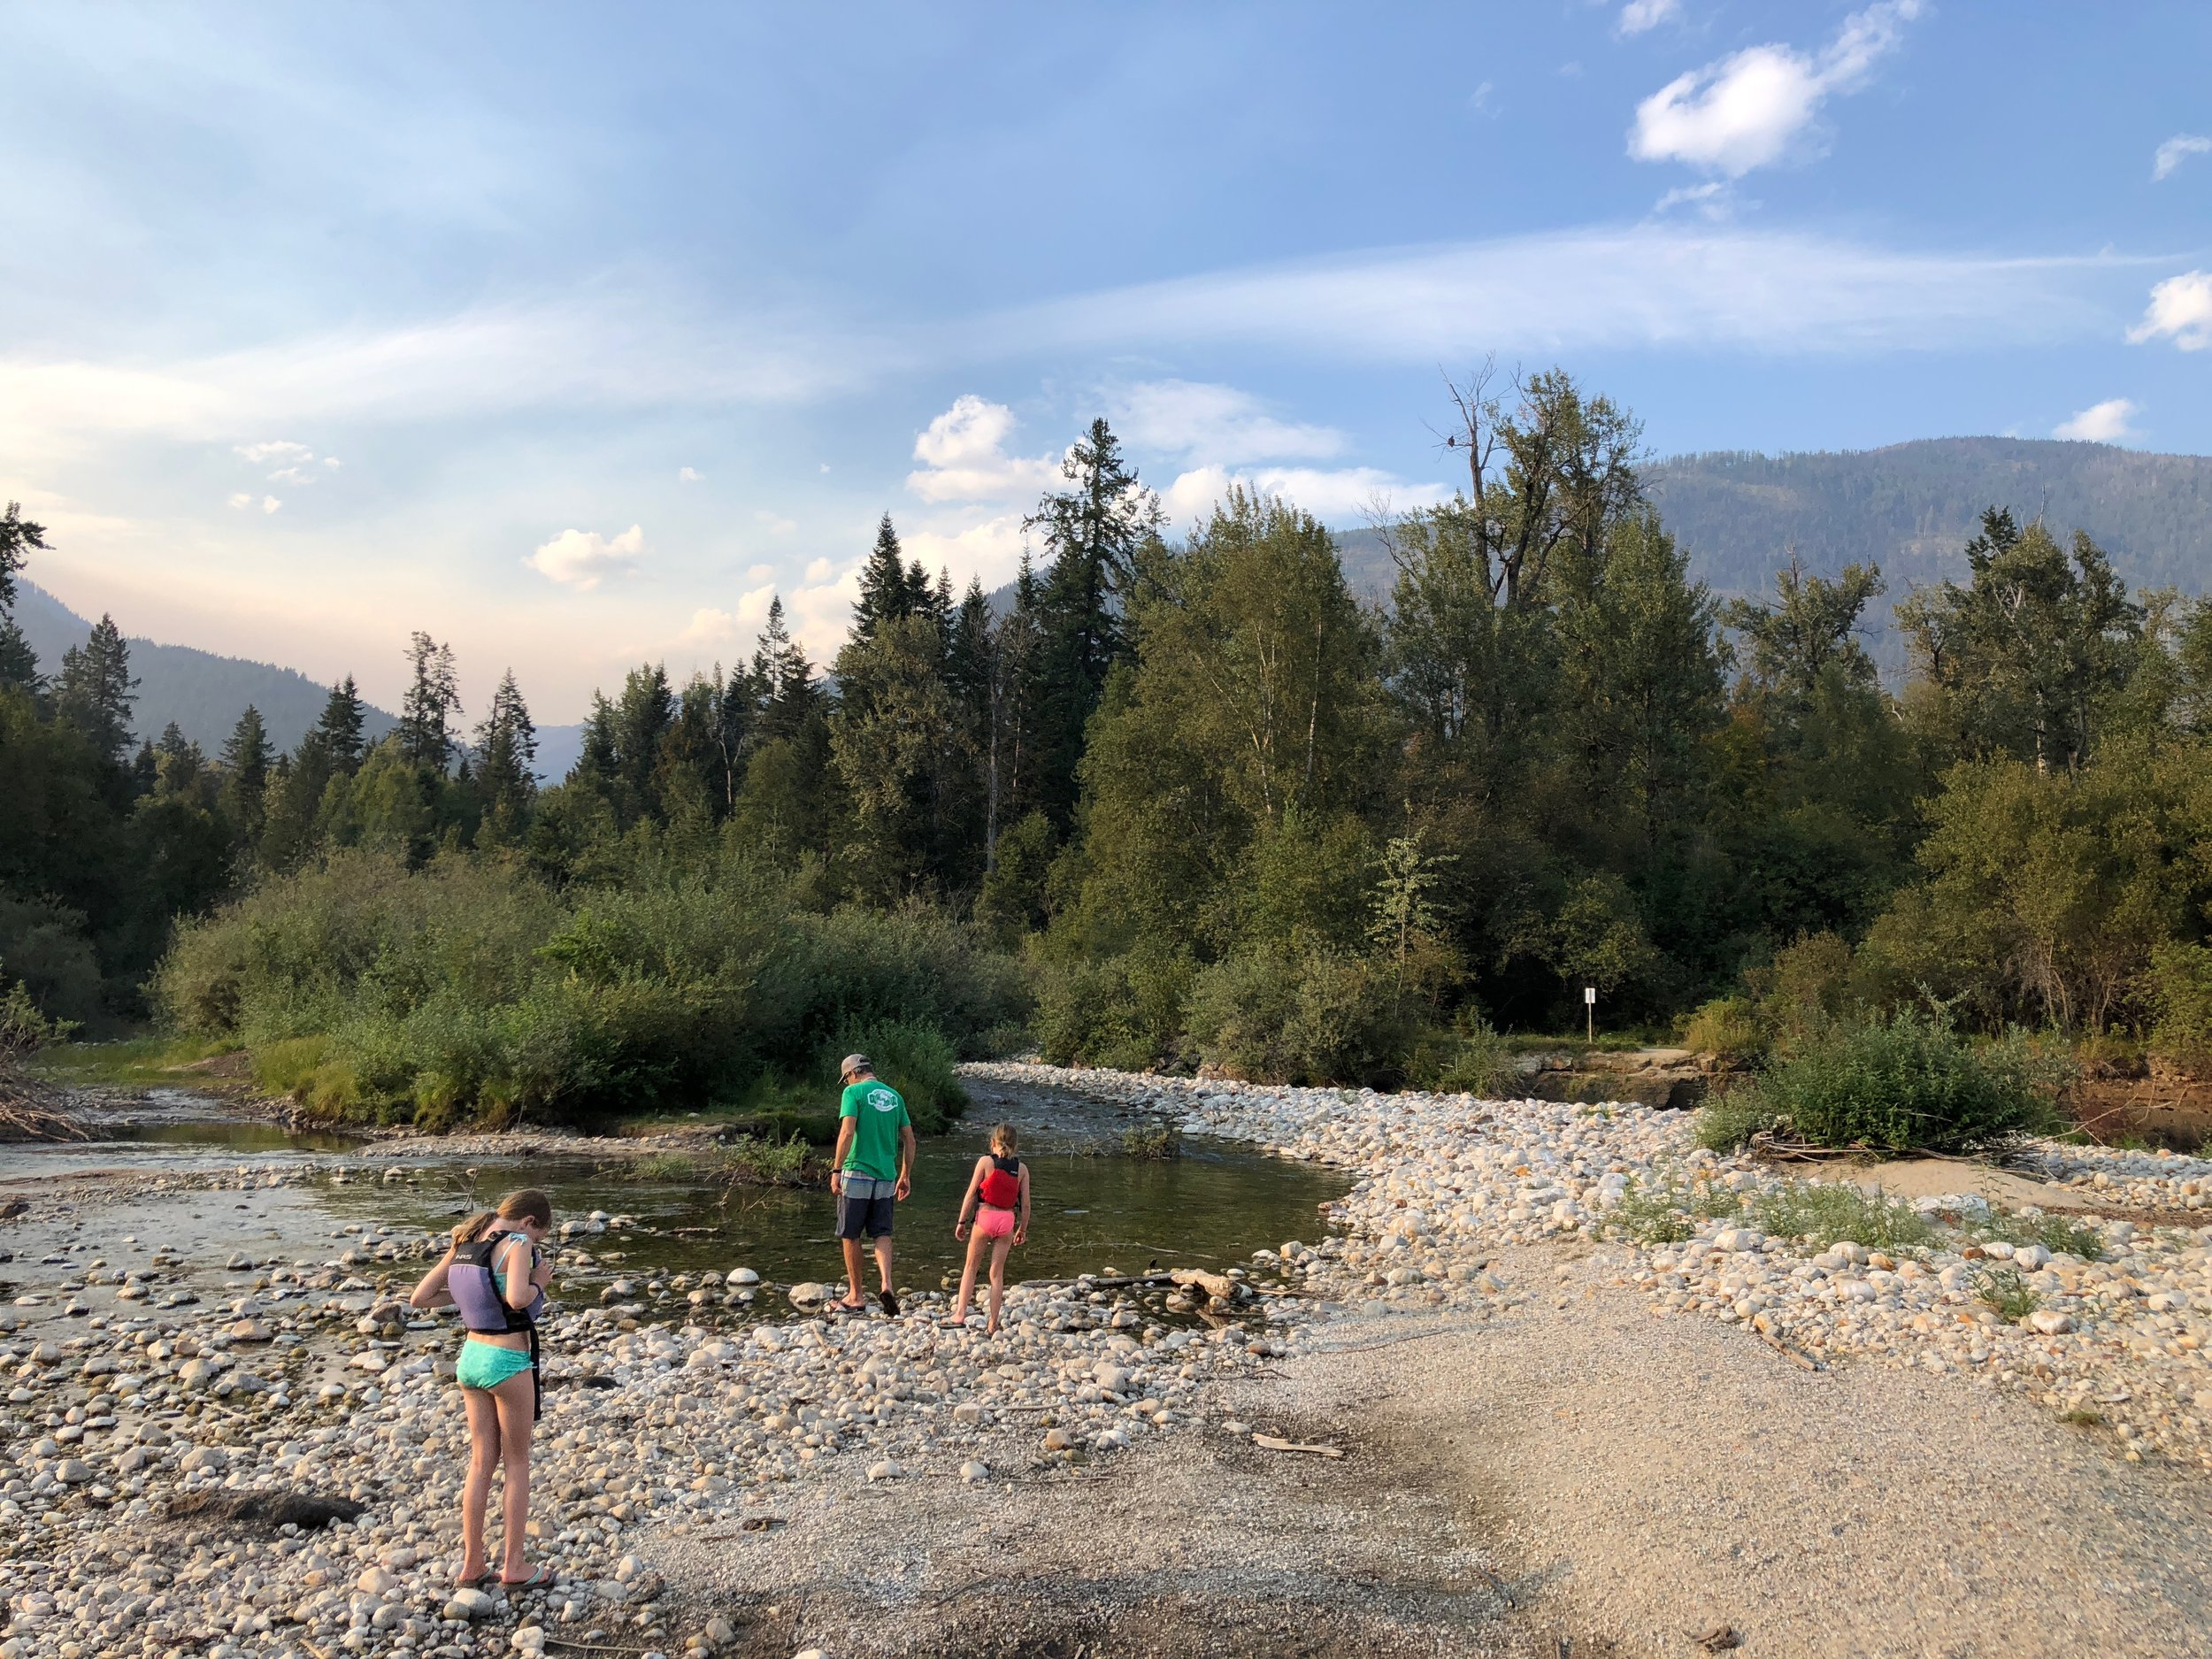 Checking out Kokanee Creek on our paddleboards